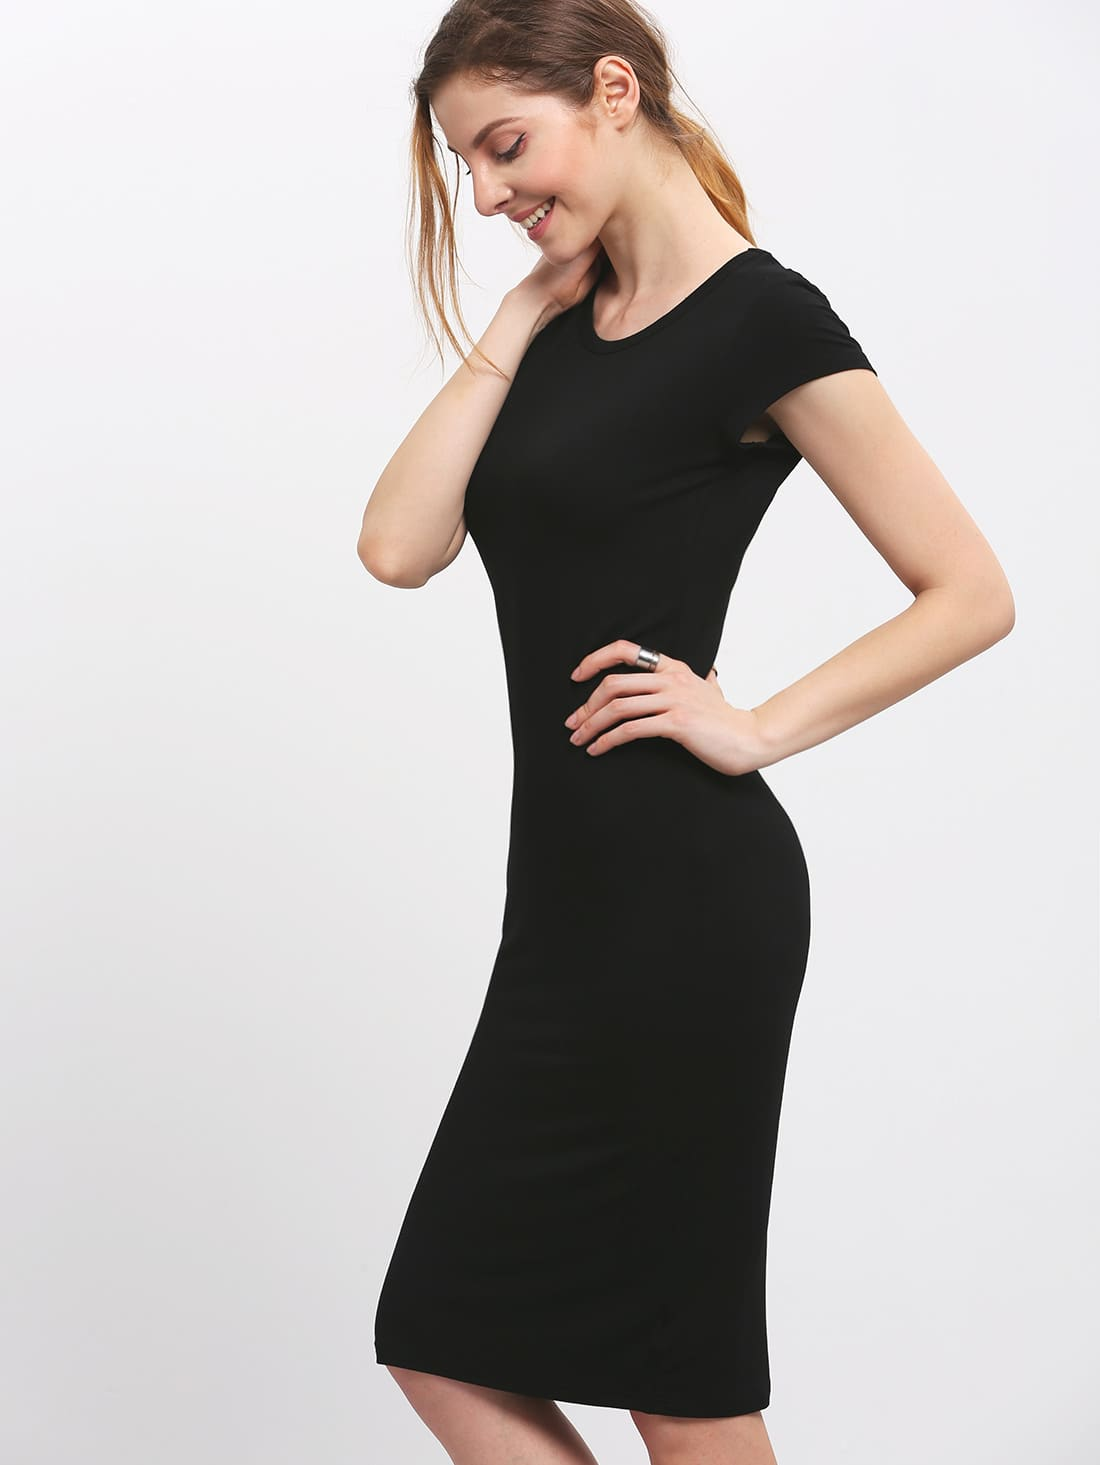 e8dc710041 Black Elegant Rayon Round Neck Cap Sleeve Bodycon Knee Length Plain Fabric  is very stretchy Summer Pencil Natural Slim Party Workwear Pencil Dresses.